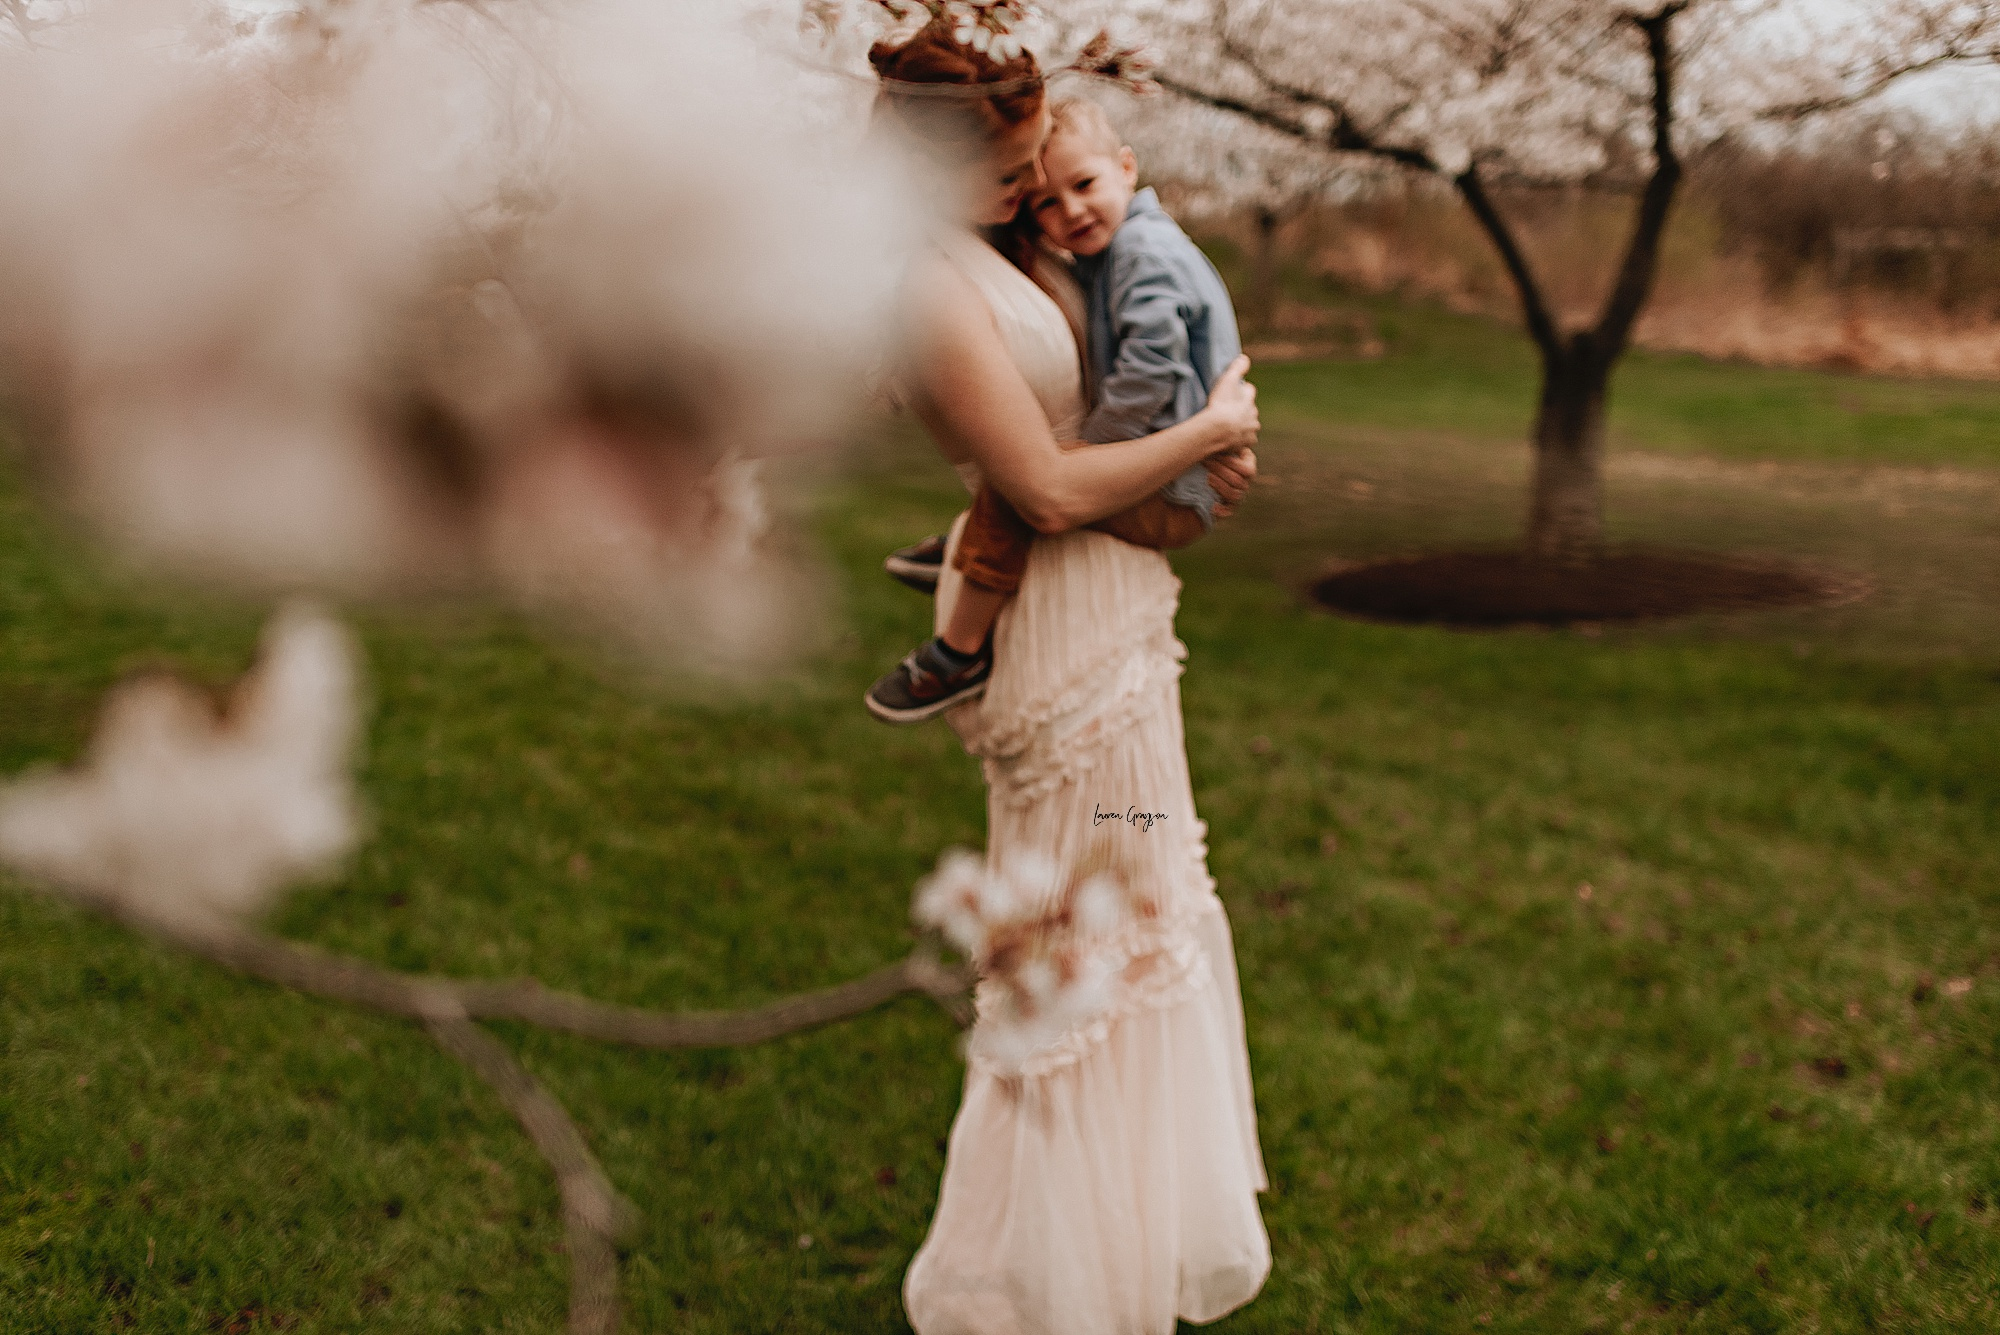 lauren-grayson-photography-cleveland-ohio-motherhood-family-child-photo-session-cherry-blossoms_0006.jpg